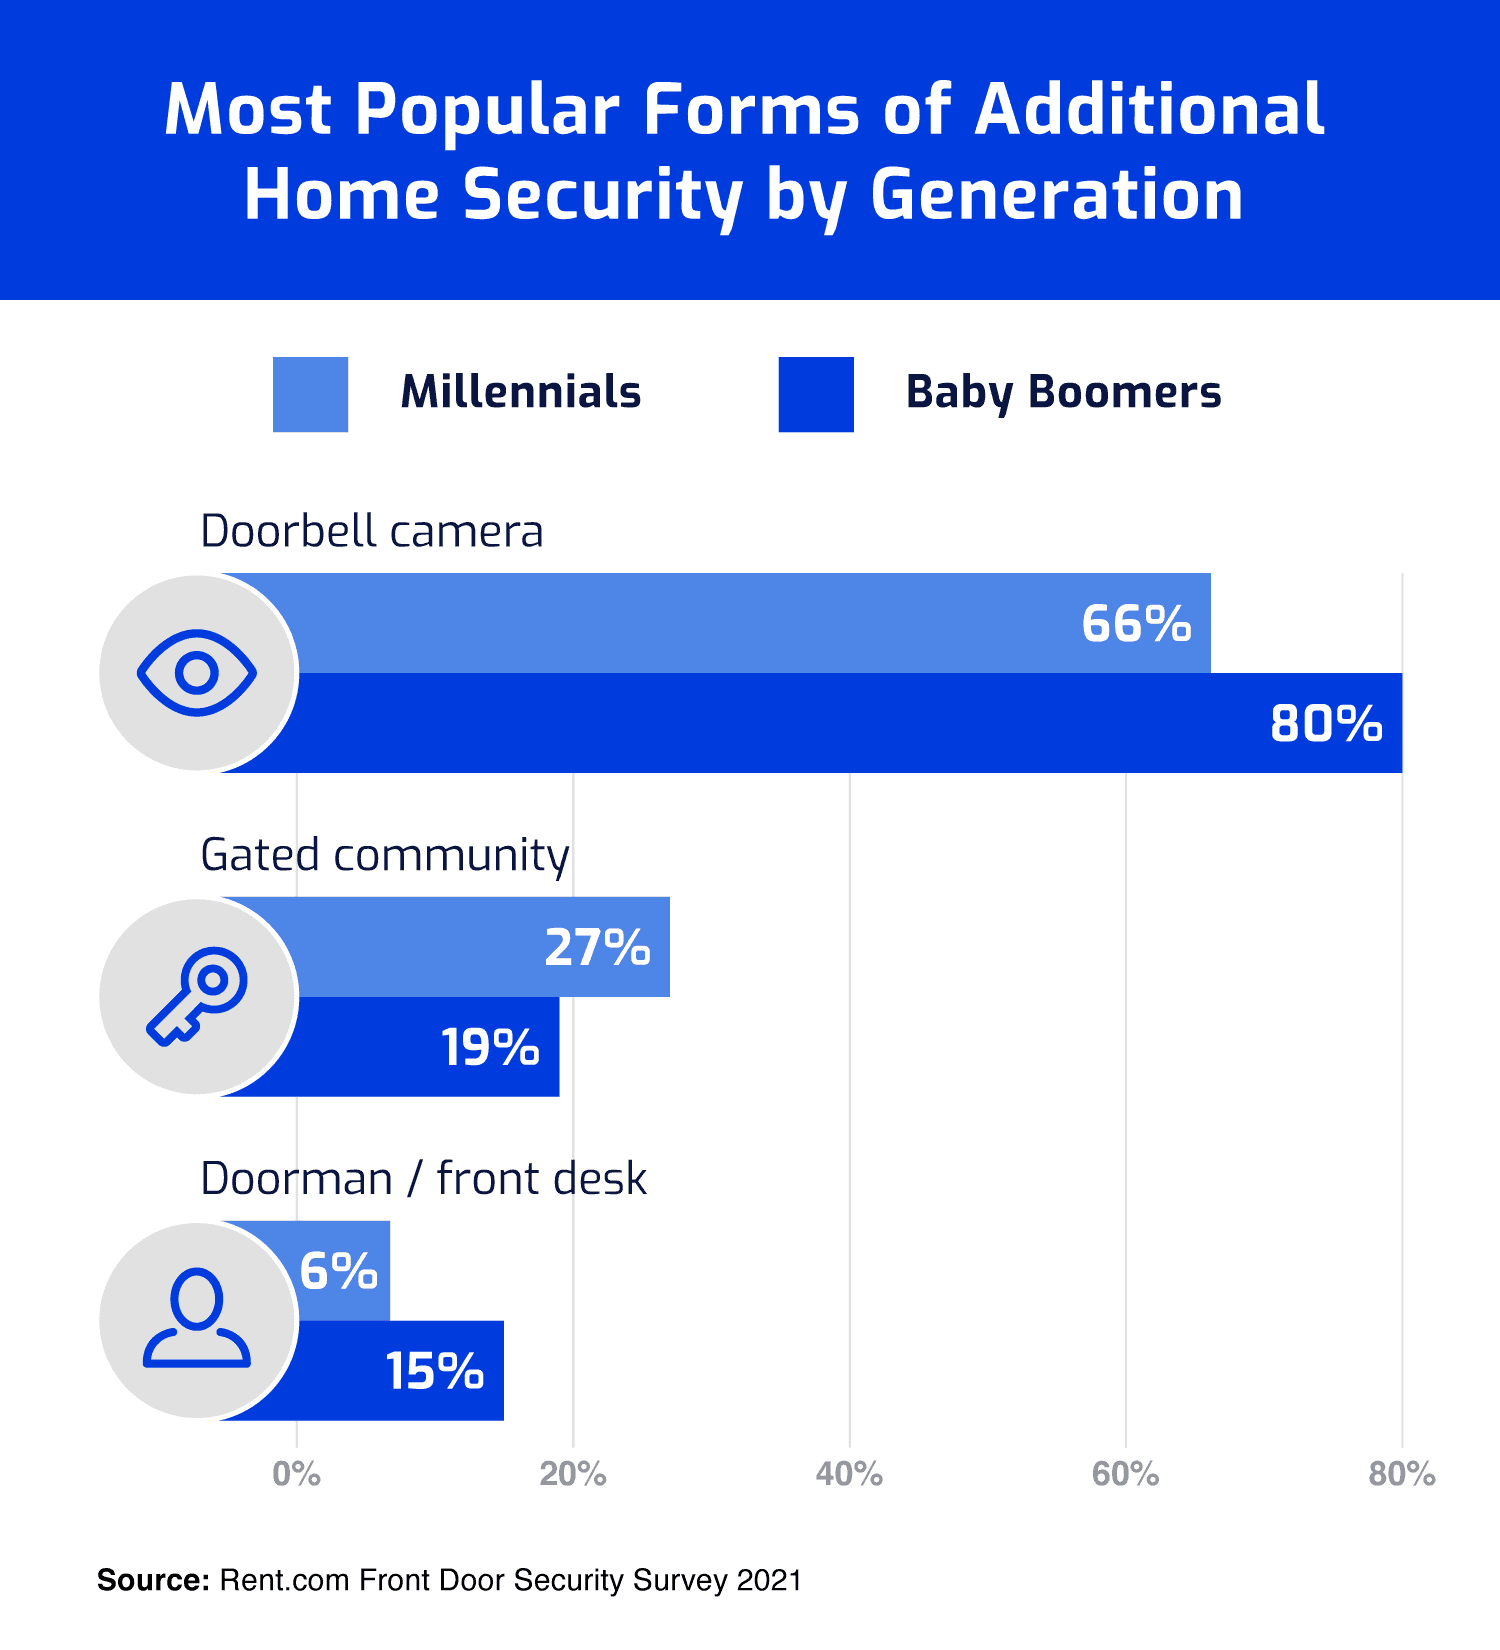 Bar graph showing the most popular forms of additional home security by generation